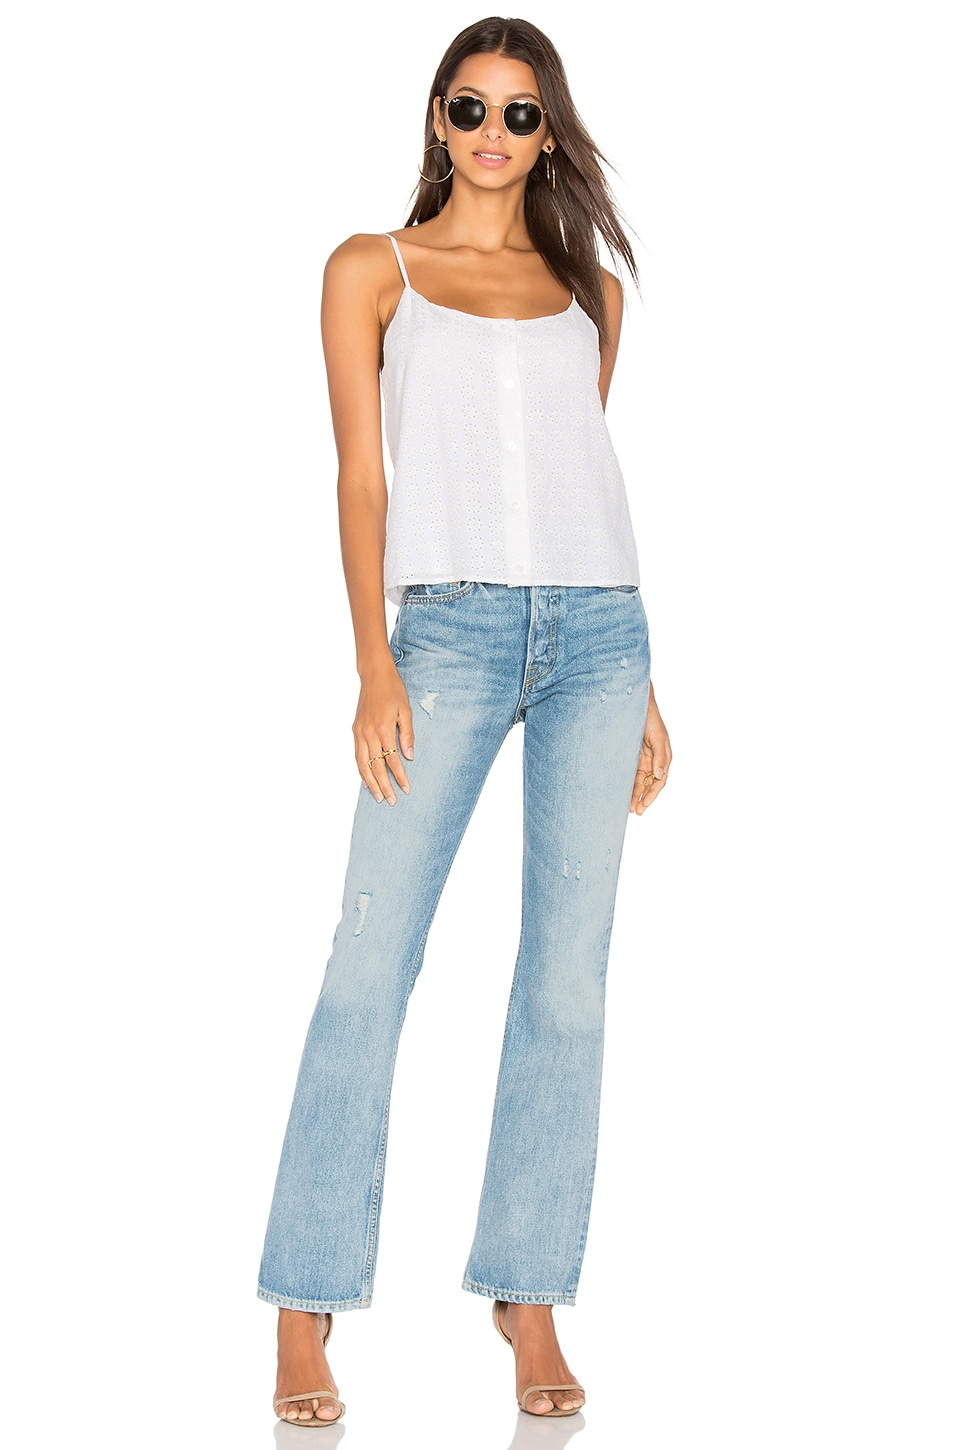 Equipment Perrin Eyelet Camisole Top In Bright White